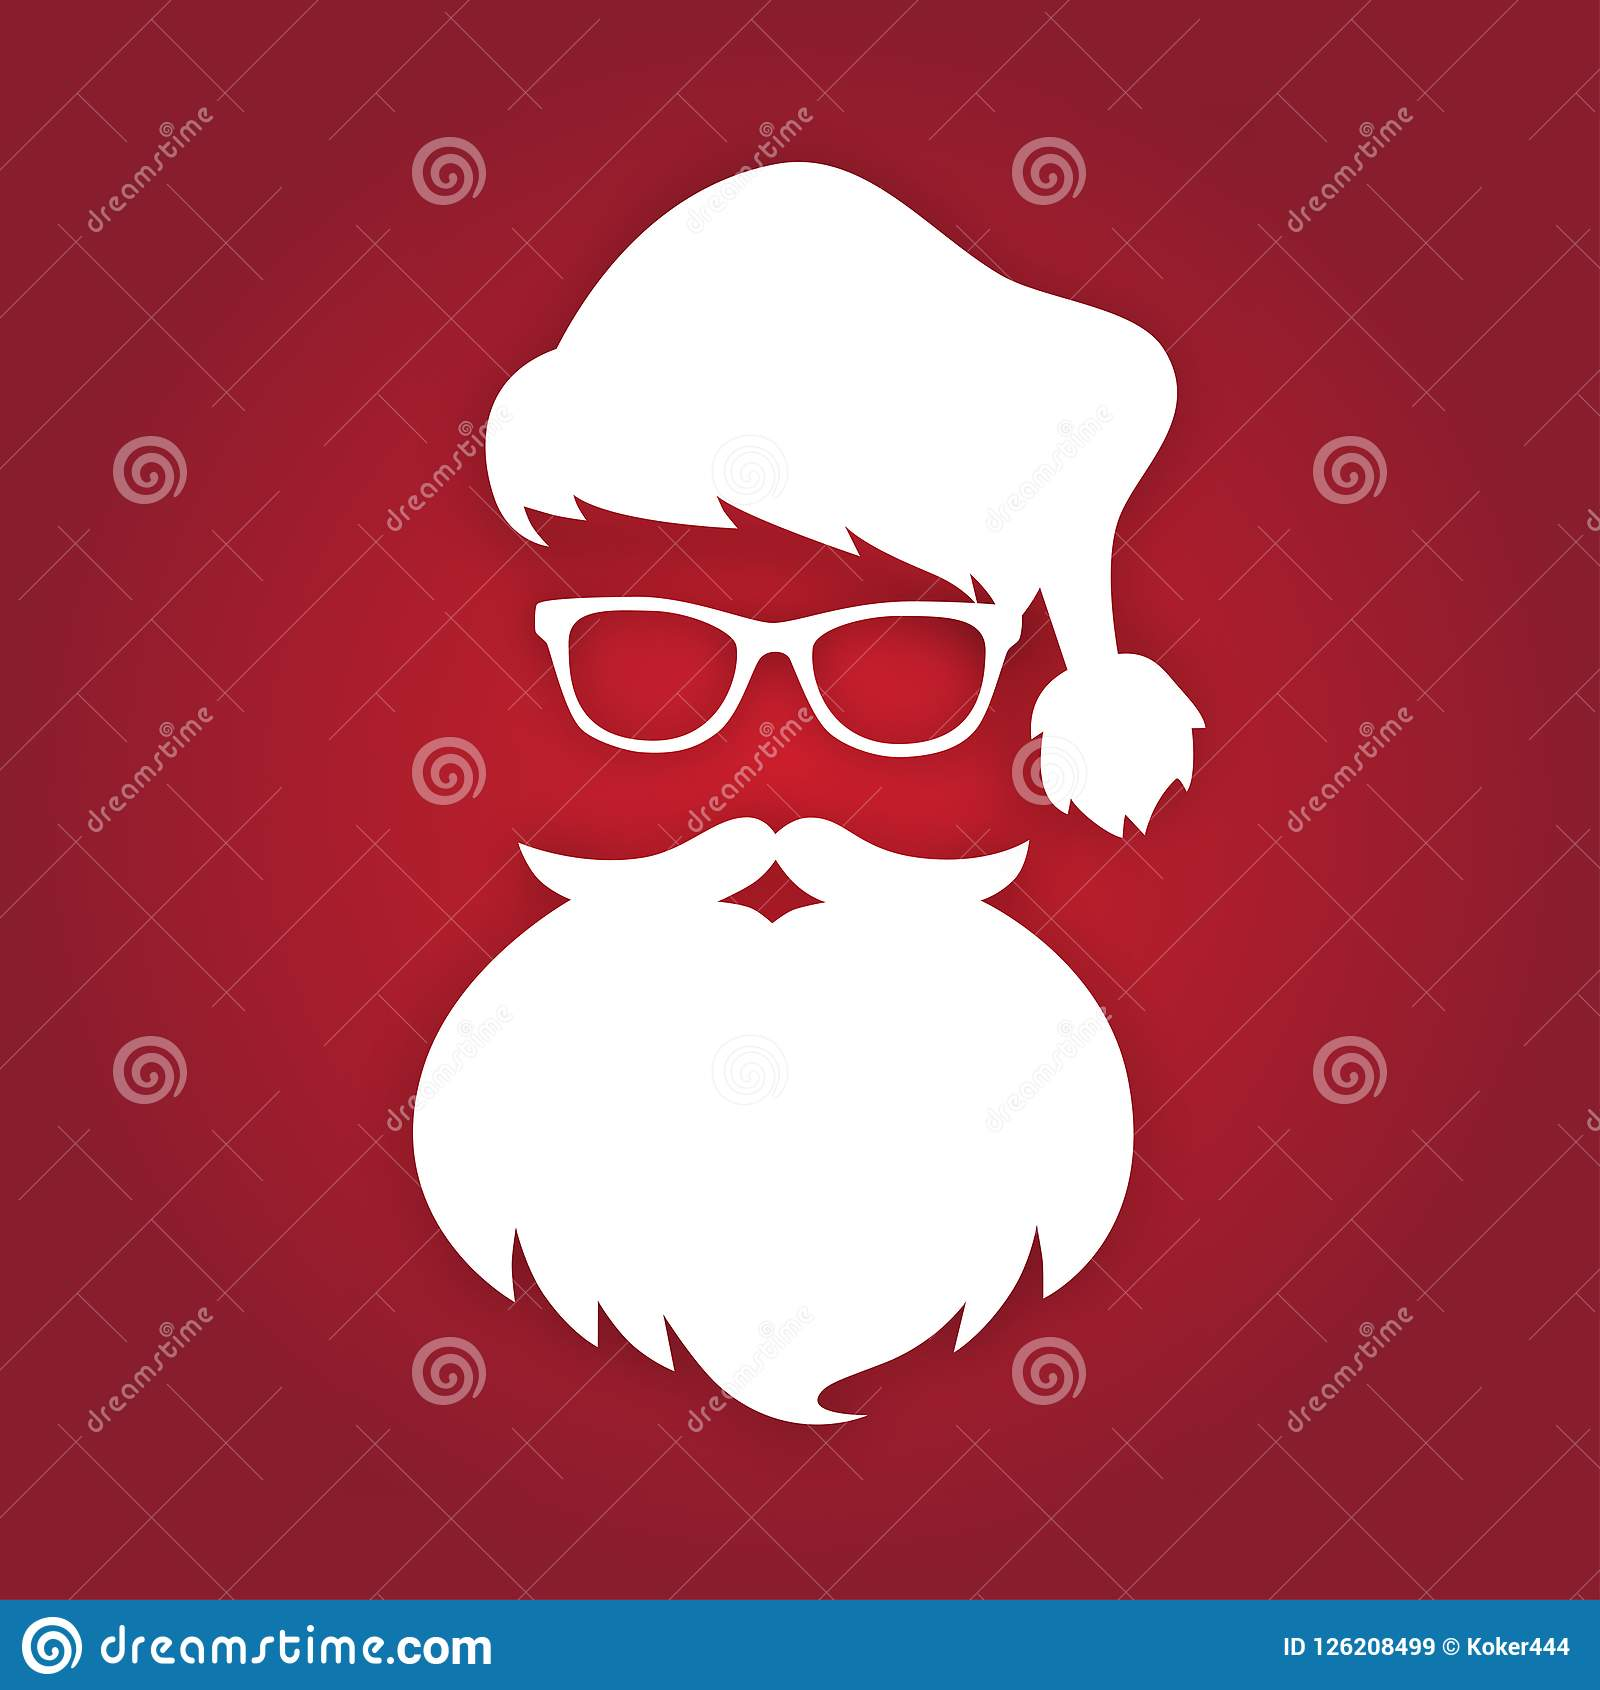 f4b7584b5dcdd Santa Claus with beard and glasses. White silhouette. Vector illustration